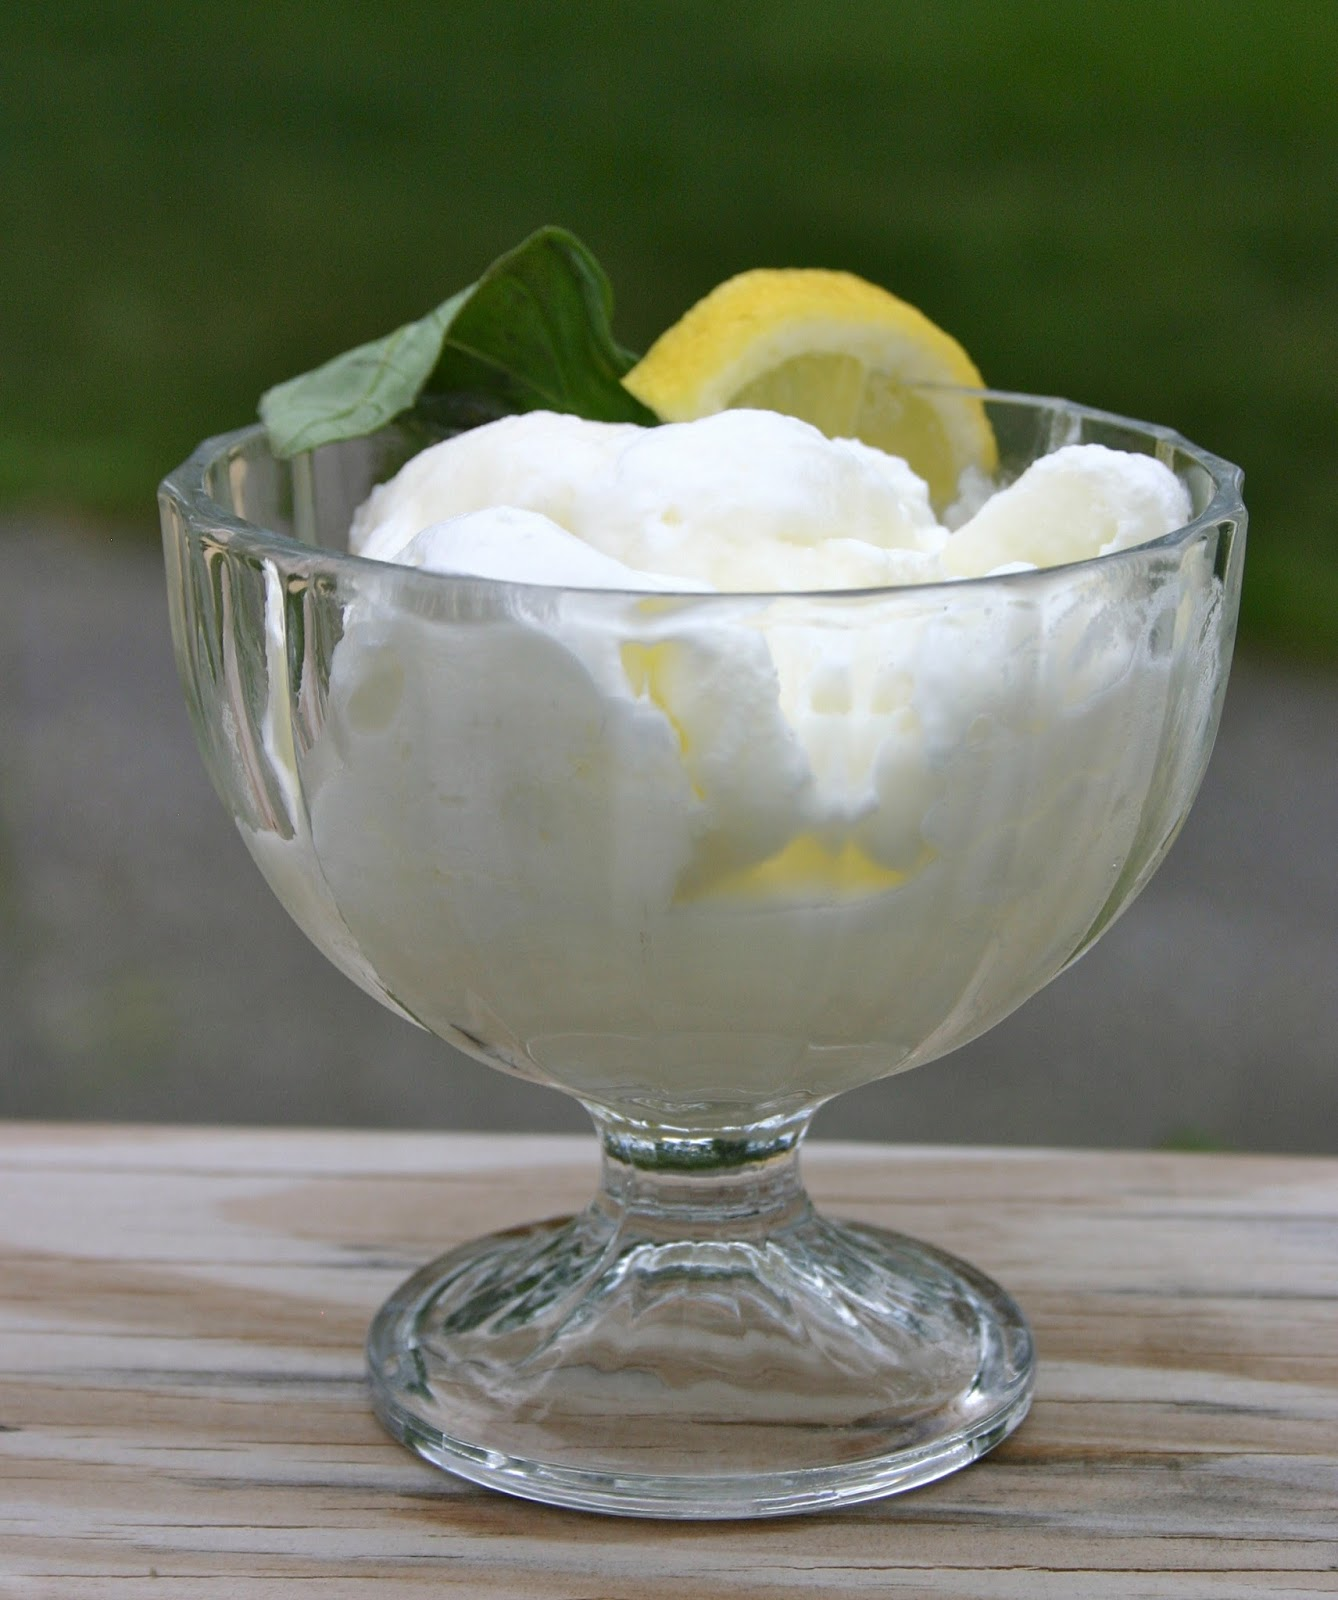 Bake It and Make It with Beth: Lemon Basil Sorbet